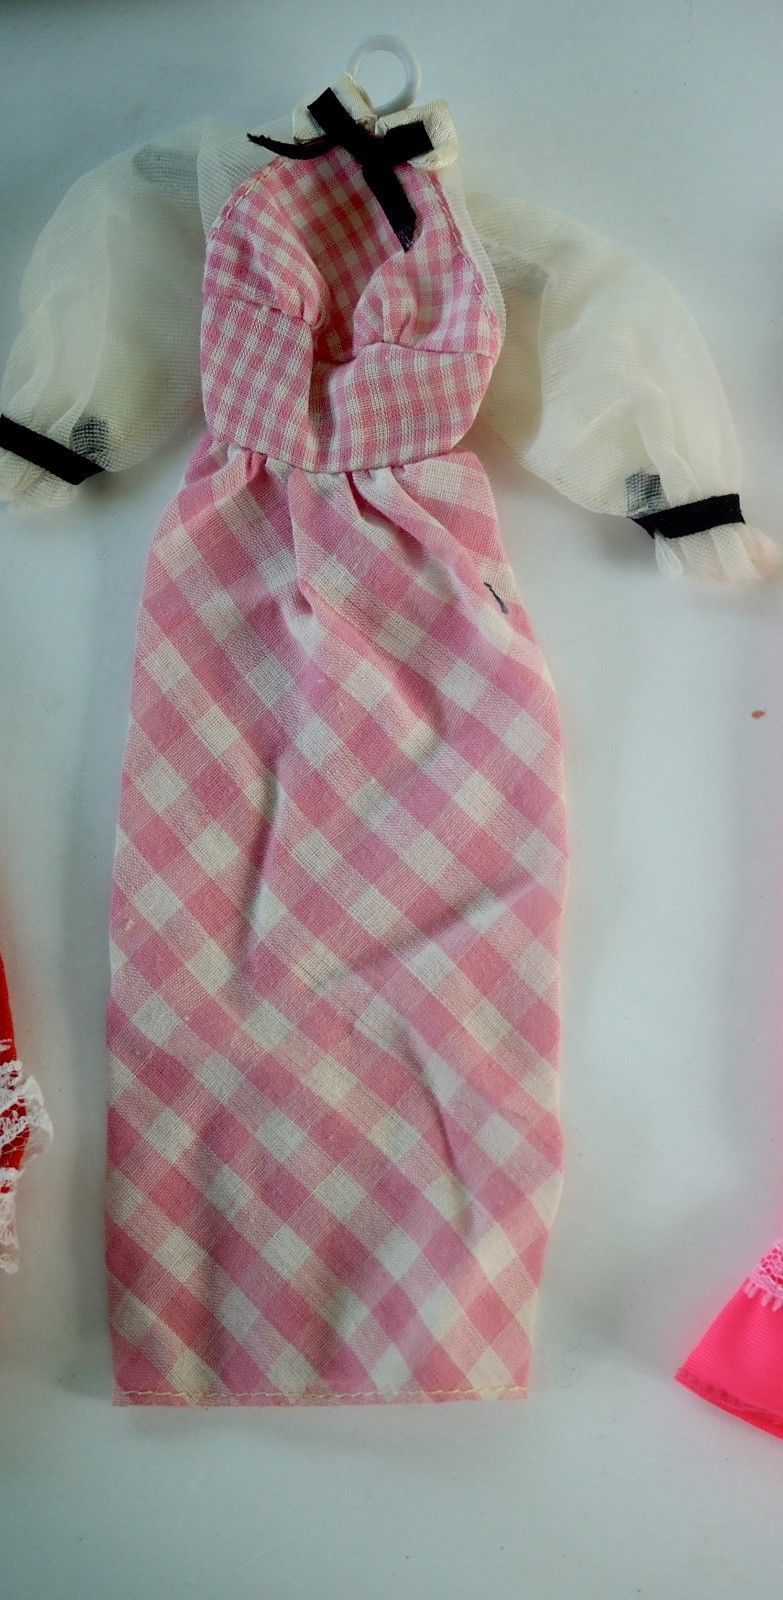 Mattel Barbie Quick Curl 1973 Pink White Gingham Dress #4220